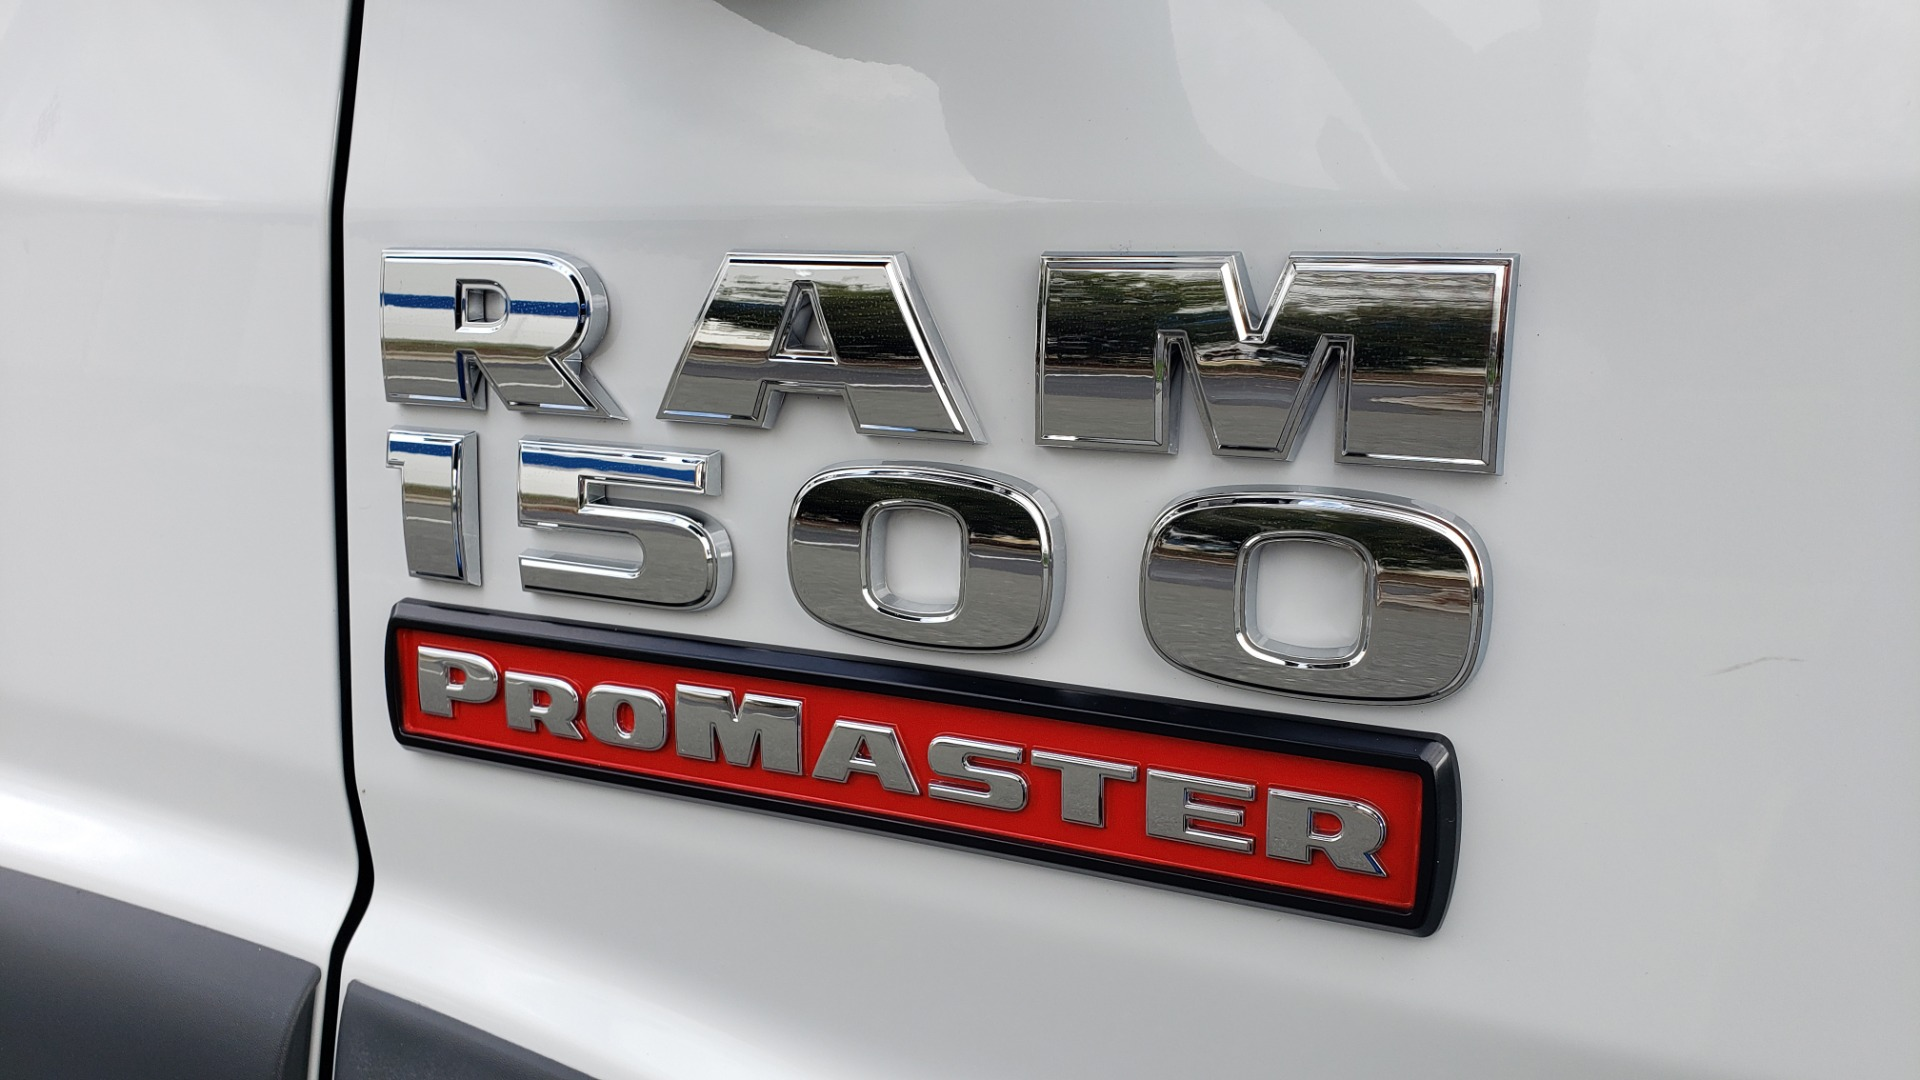 Used 2015 Ram PROMASTER CARGO VAN 136-INCH WB / LOW ROOF / LADDER RACK / INSIDE RACKS for sale $15,995 at Formula Imports in Charlotte NC 28227 9